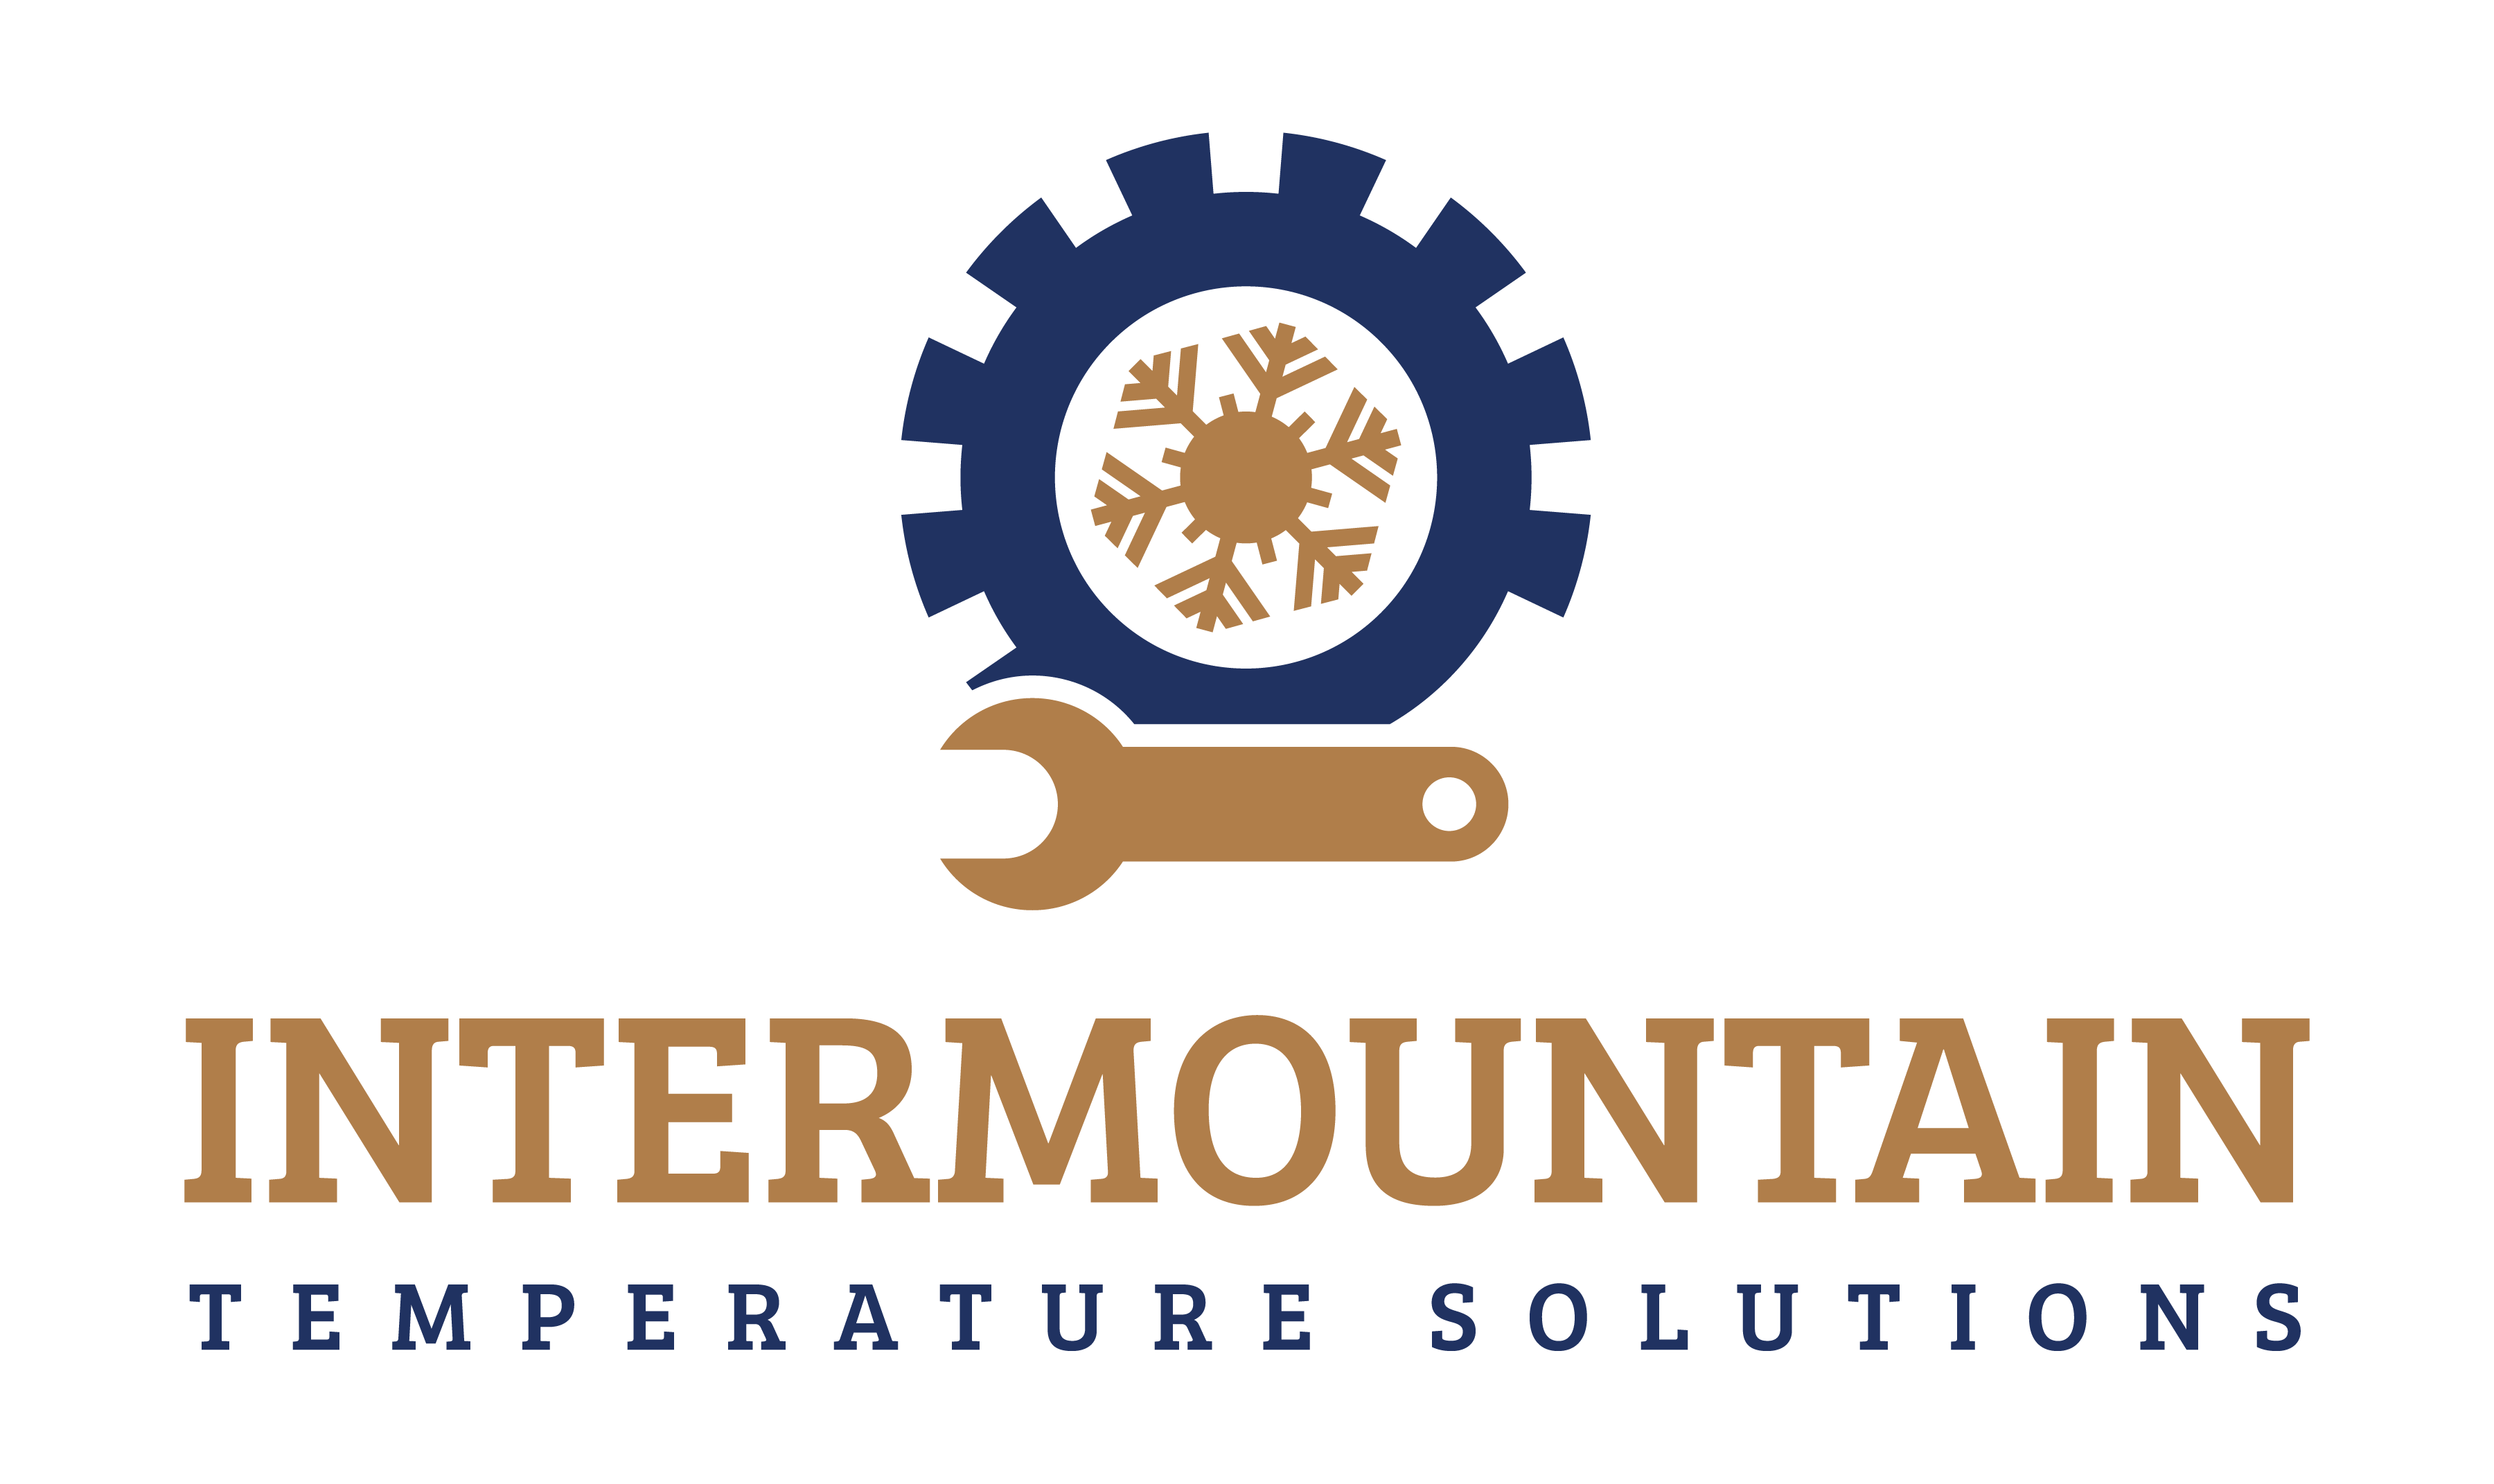 Intermountain Temperature Solutions.com